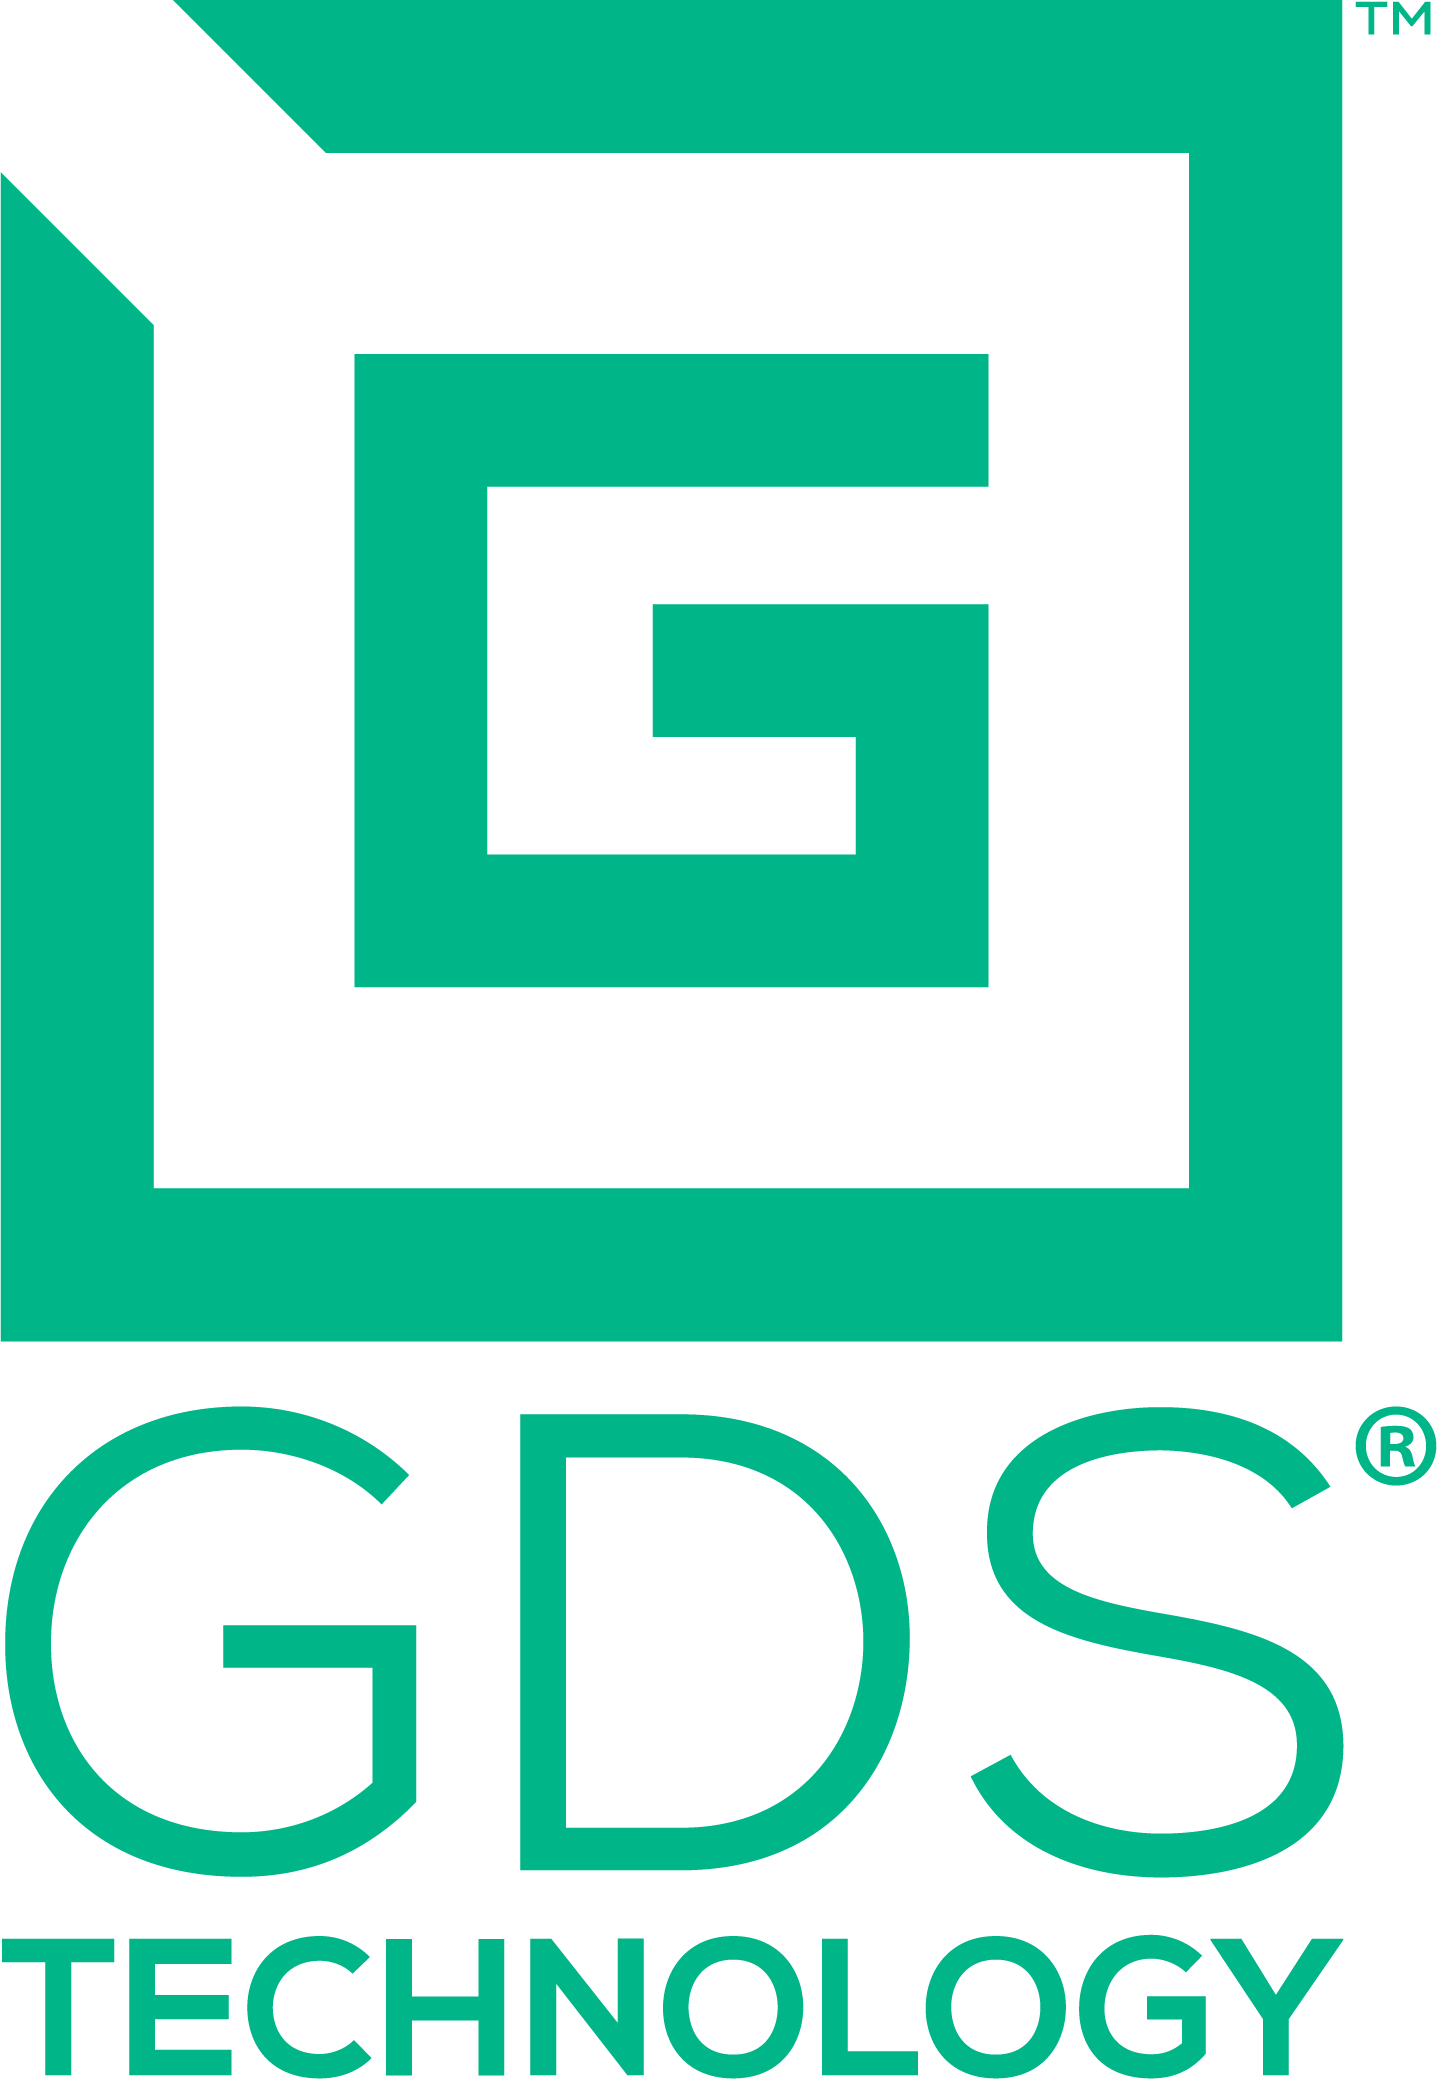 GDS® Technology™ logo as a green G inside a square with top left corner open